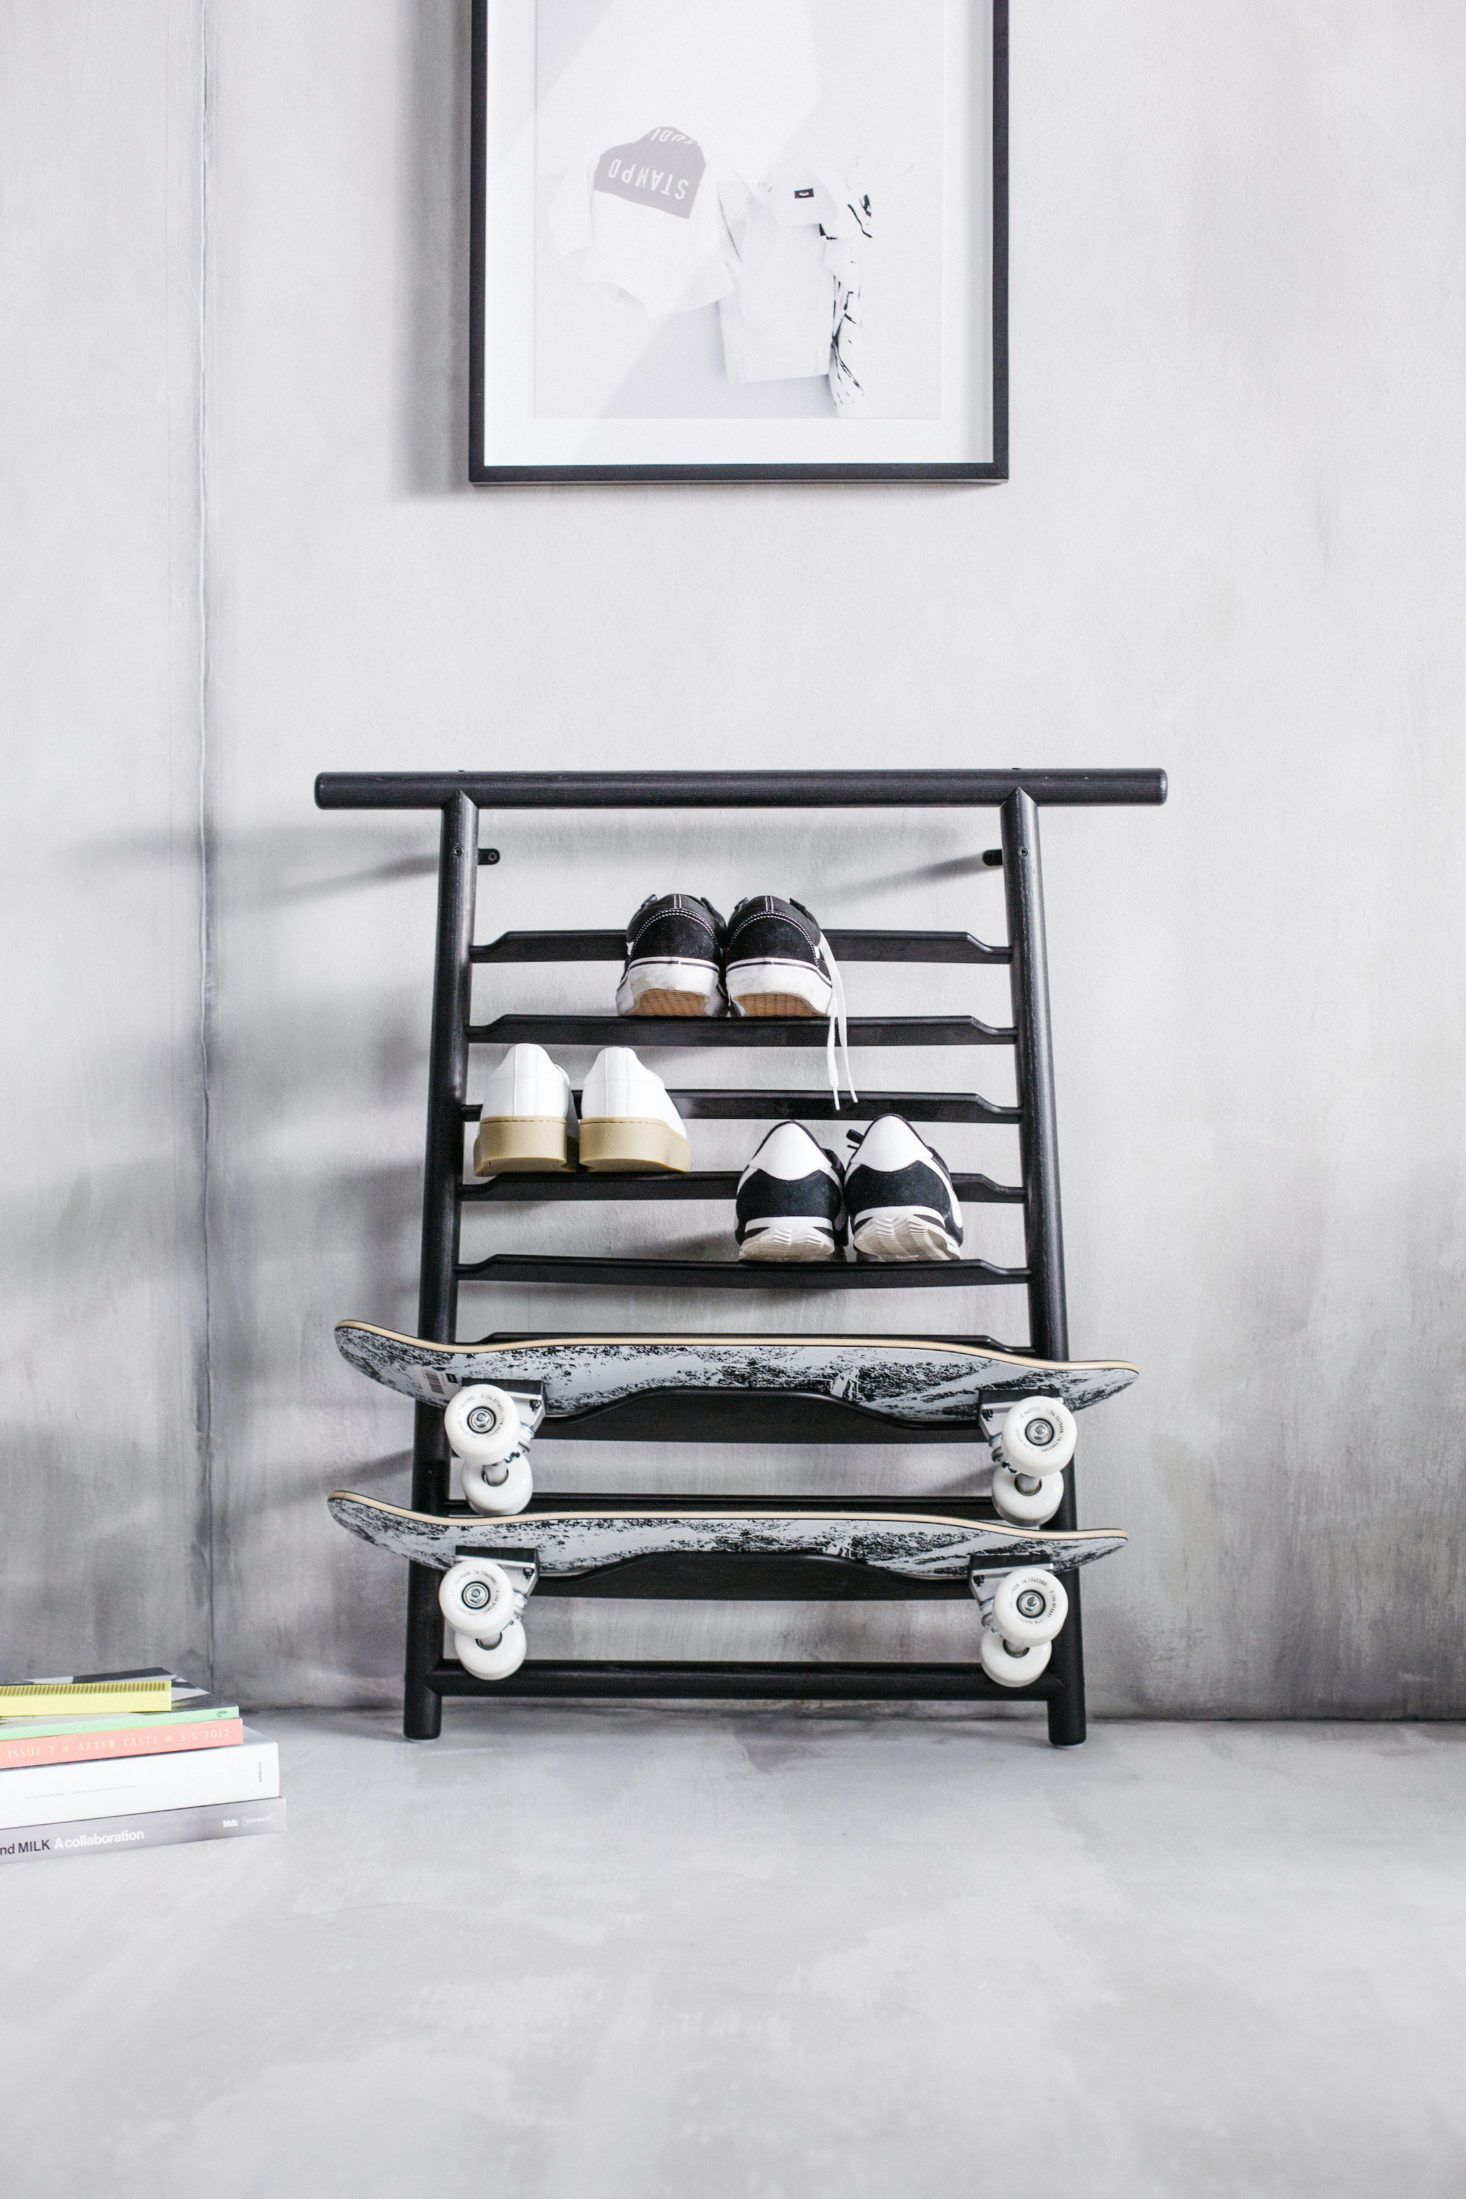 Ikea Spanst Skateboard and Shoe Rack Our